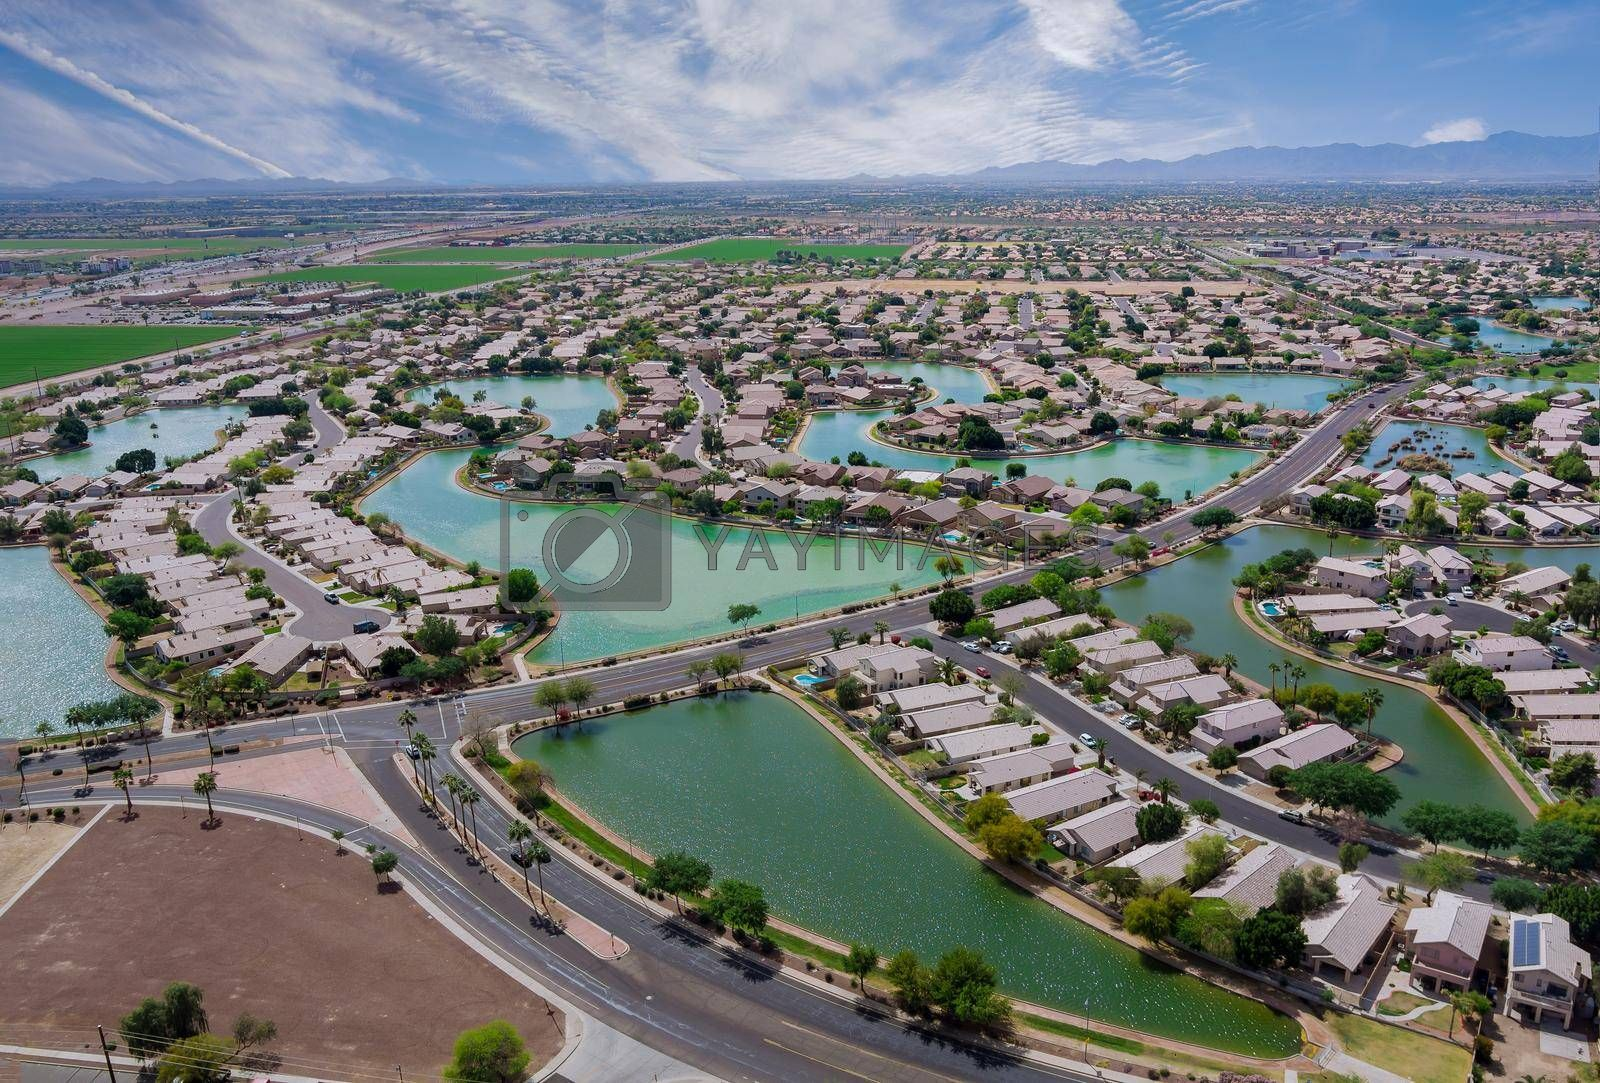 Aerial roofs of the many small ponds near a Avondale town houses in the urban landscape of a small sleeping area Phoenix Arizona USA